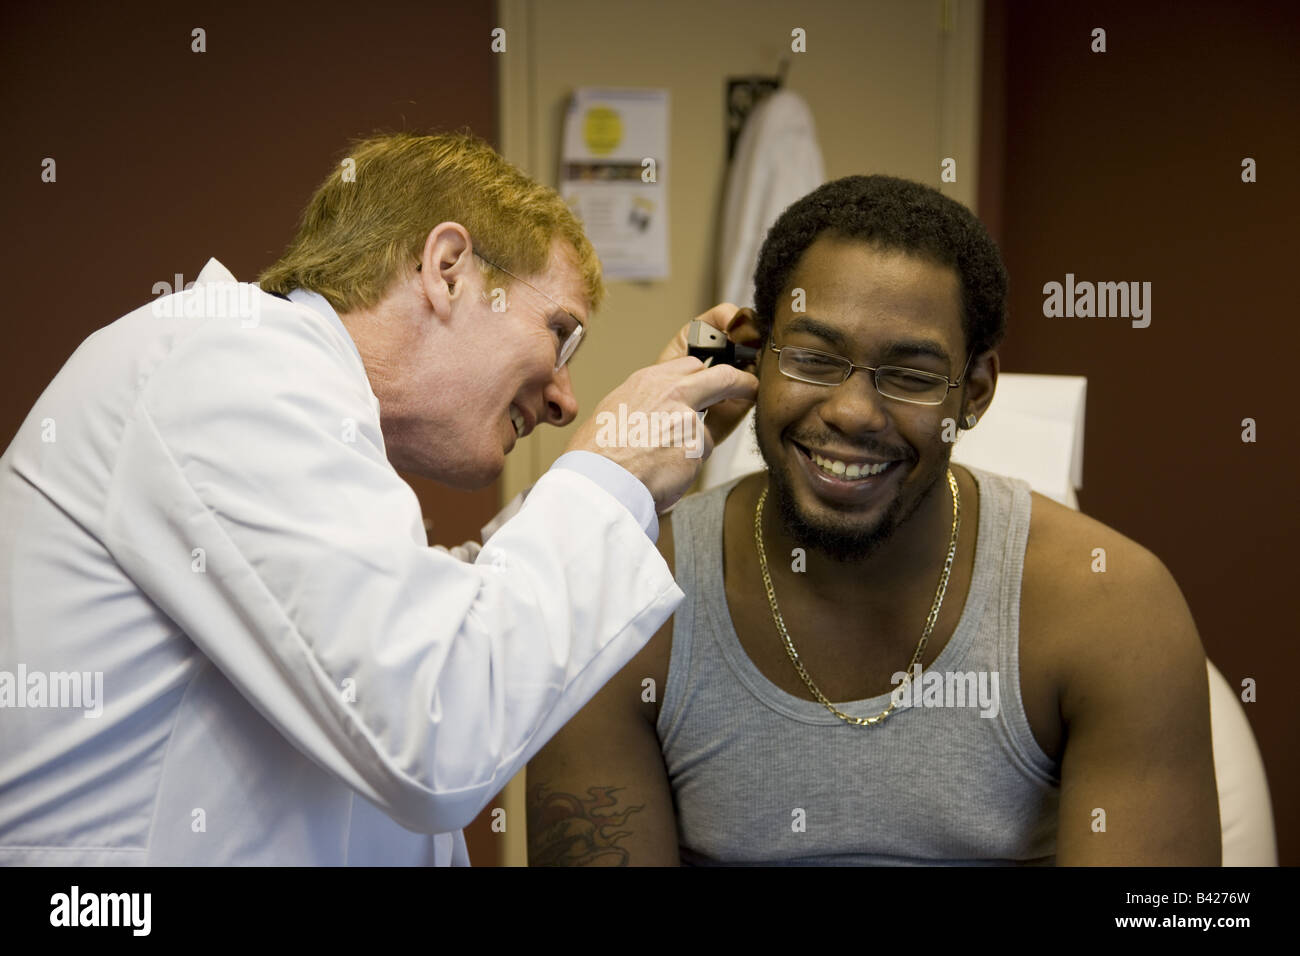 A doctor examines the ears of an African-American man during a physical examination. Stock Photo